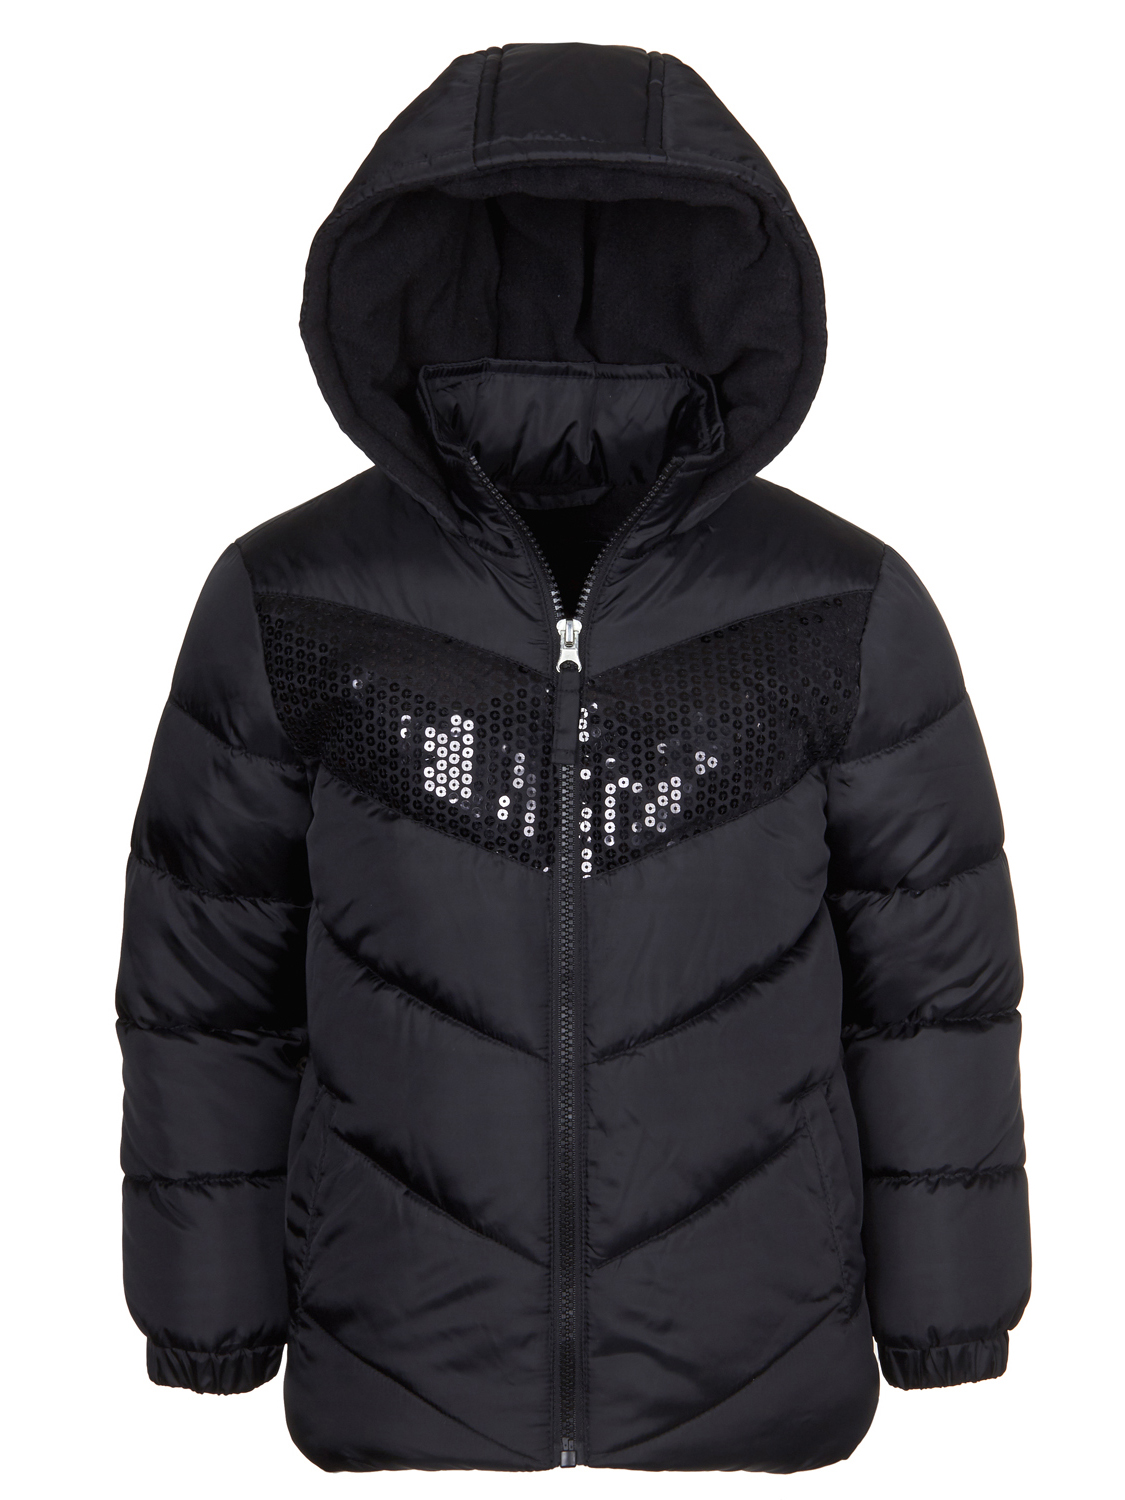 Product Image Sequin Hooded Puffer Jacket (Little Girls \u0026 Big Girls) Little Coats Jackets - Walmart.com